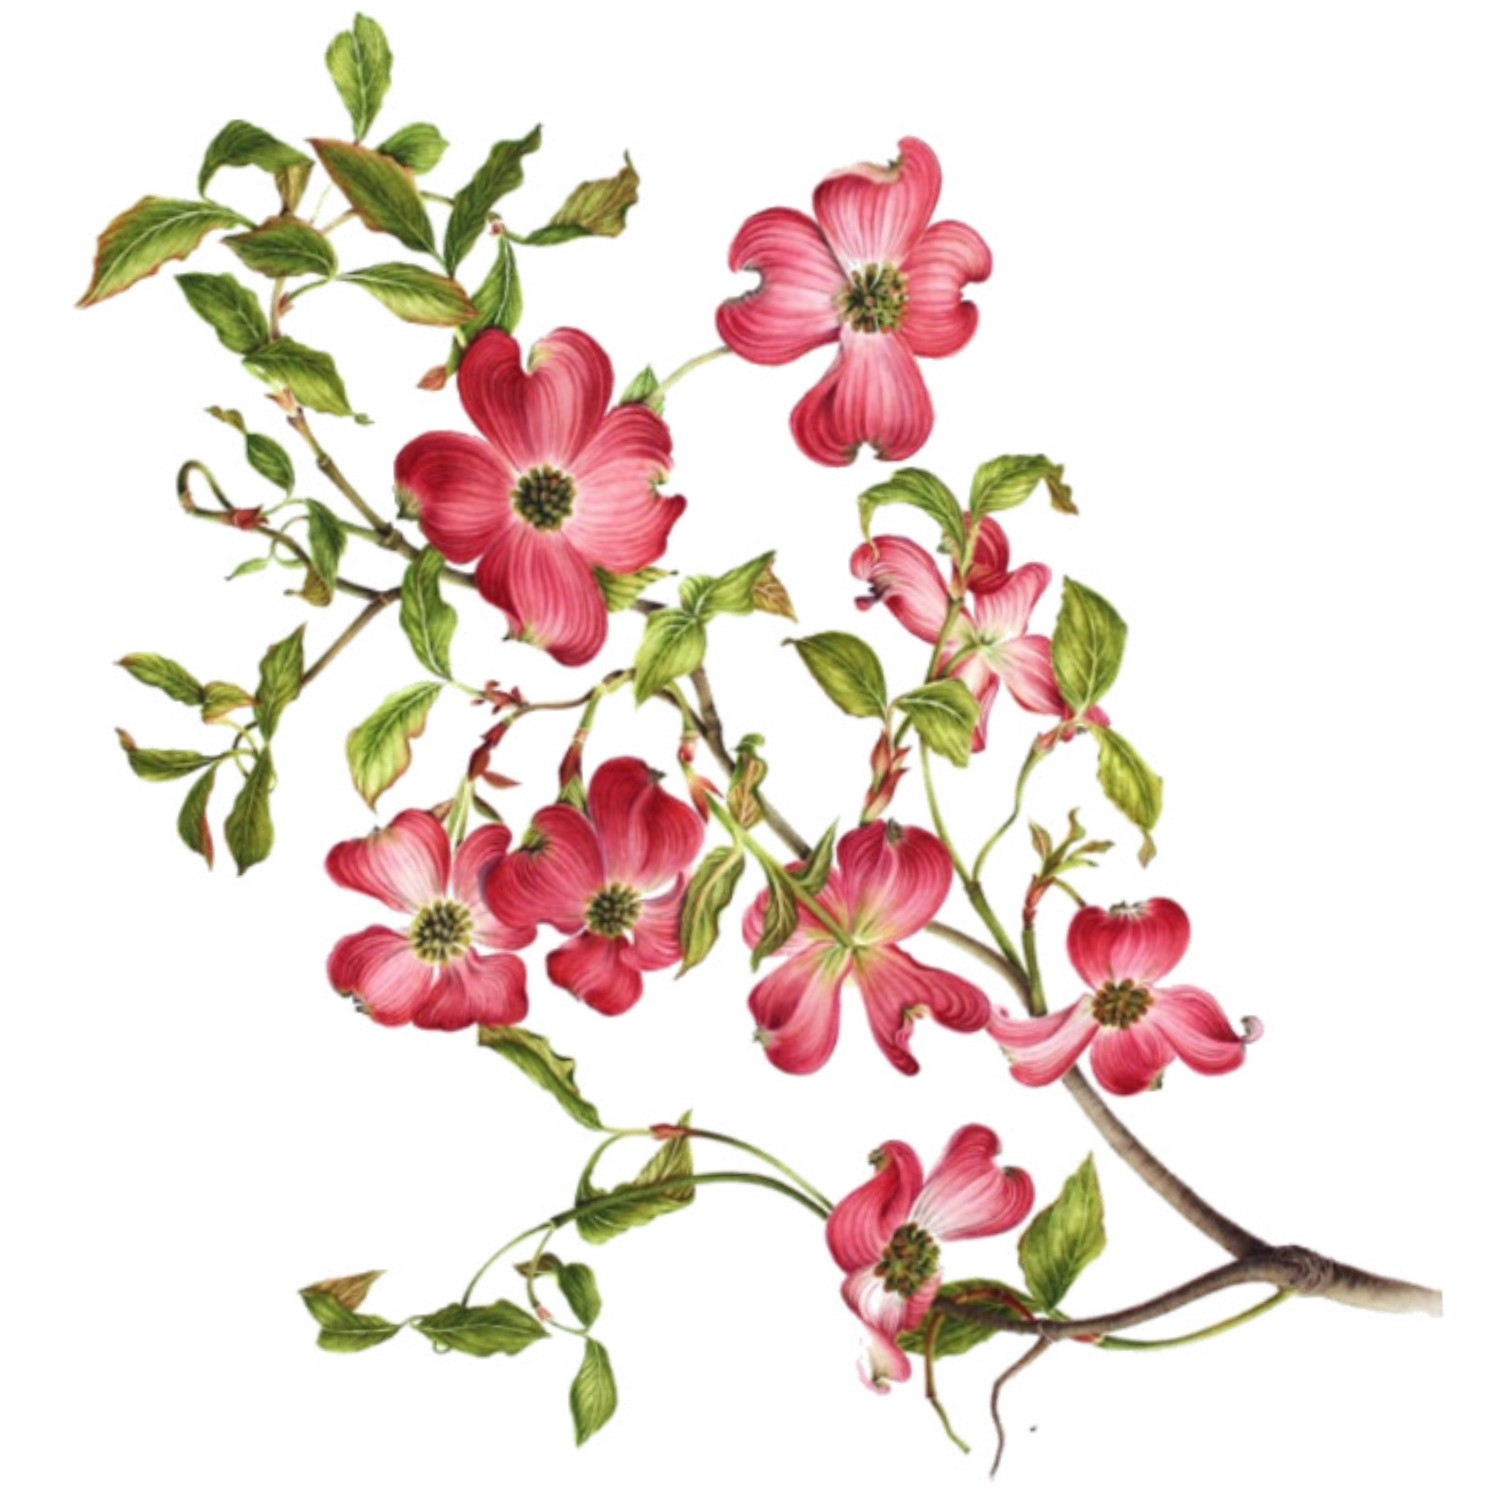 Rose clipart branch #8